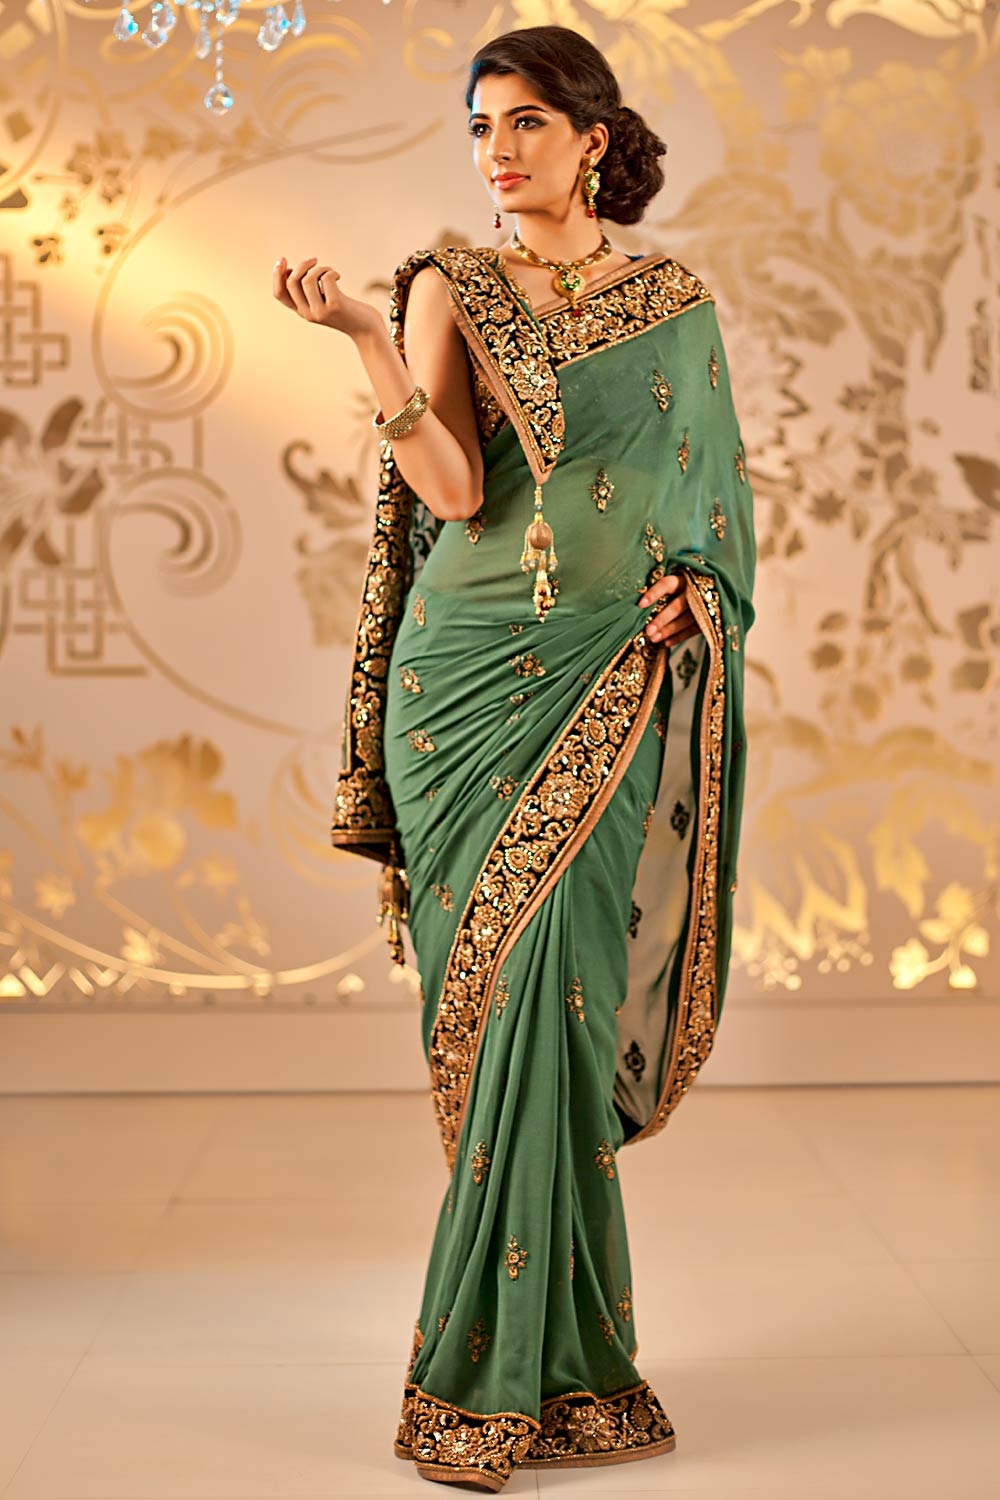 Bridal Sarees | Indian Bridal Sarees